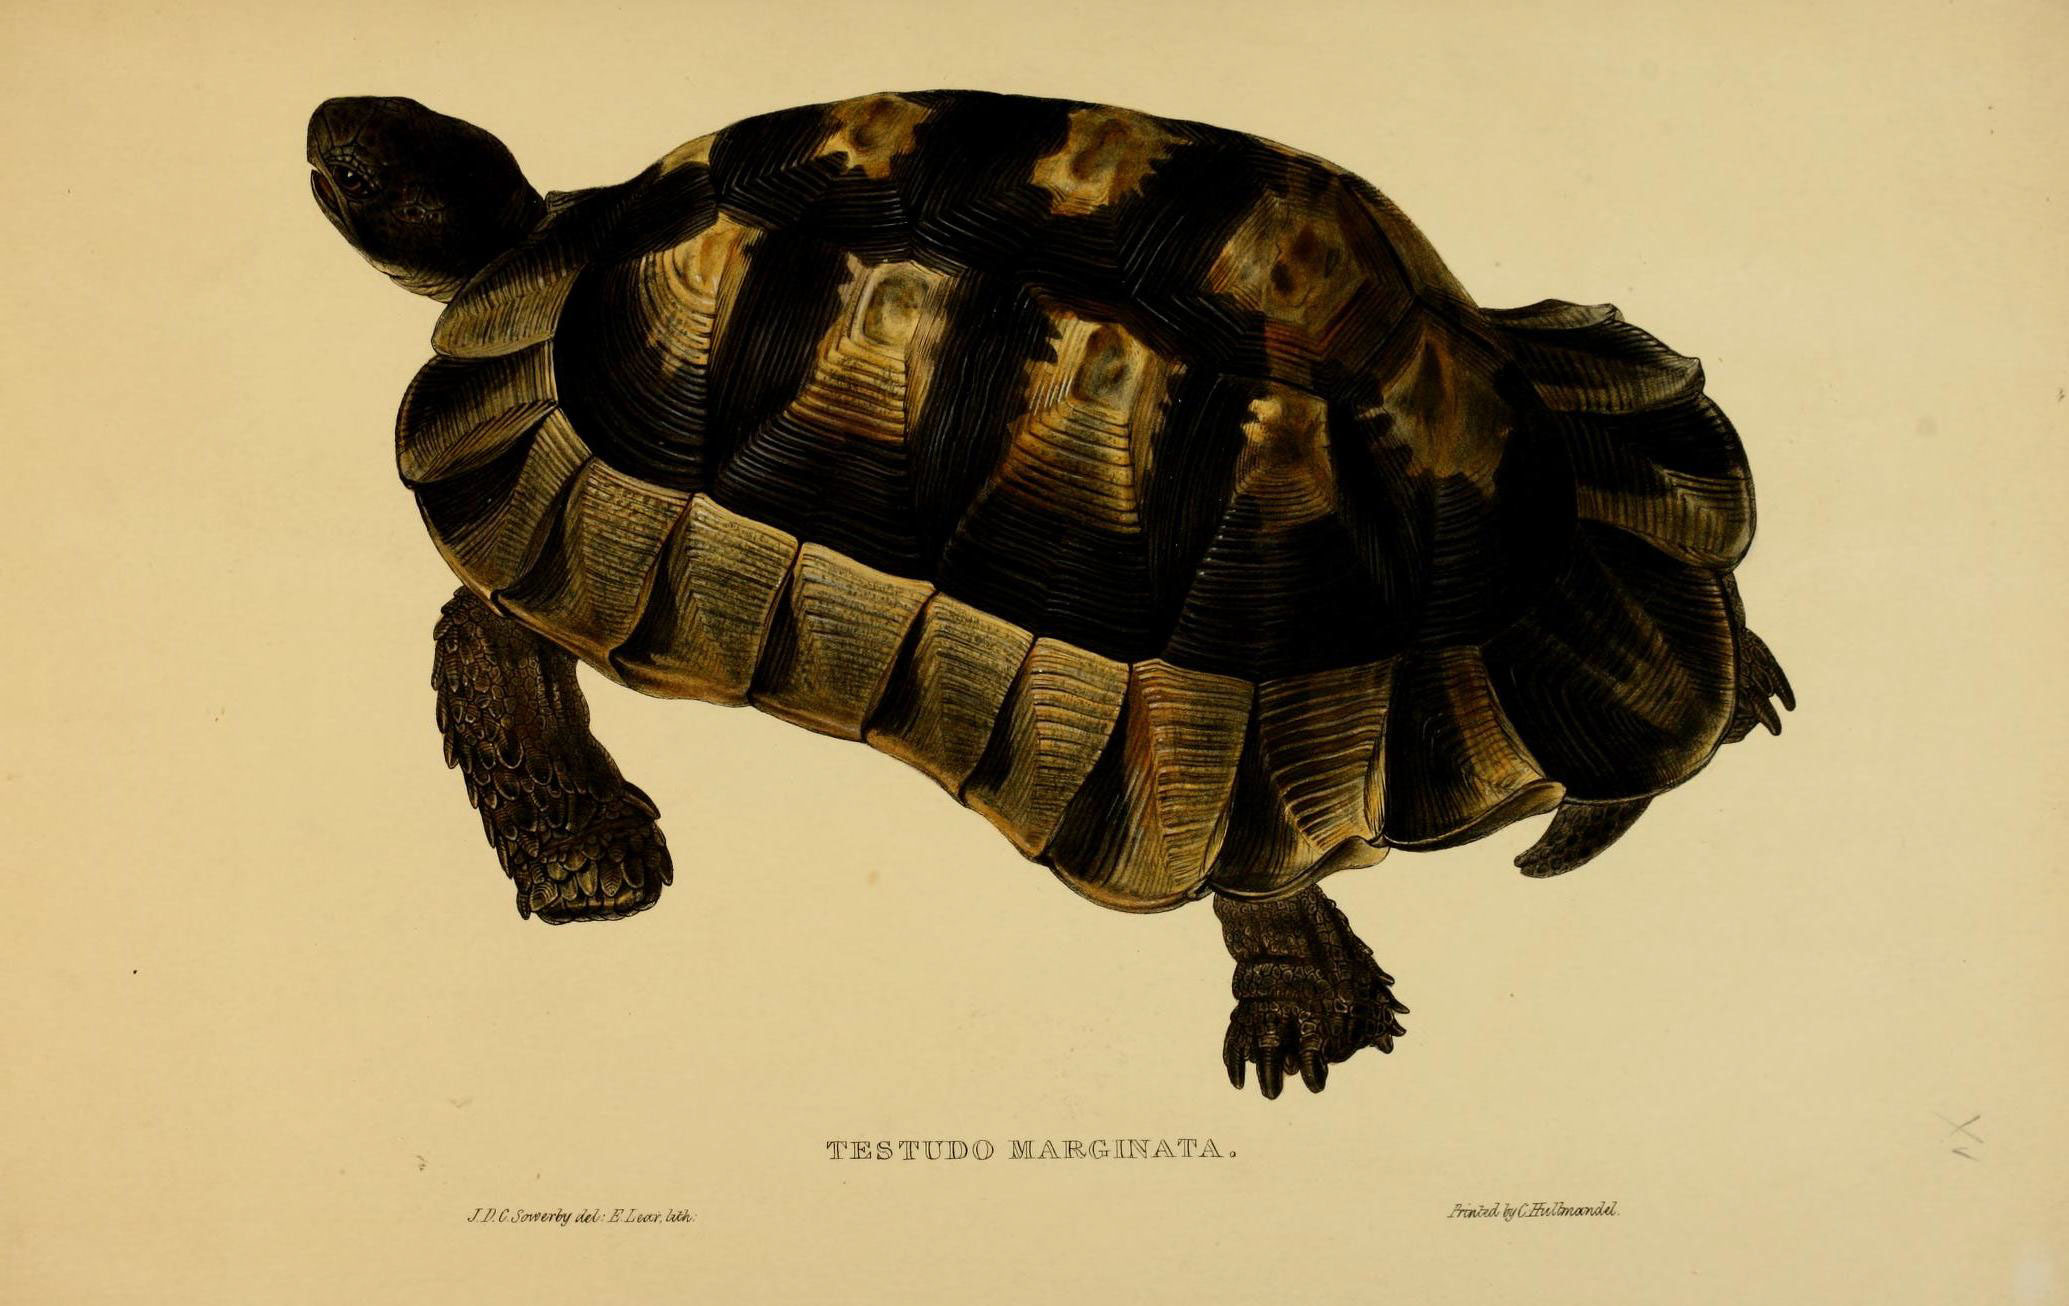 Image of Marginated tortoise